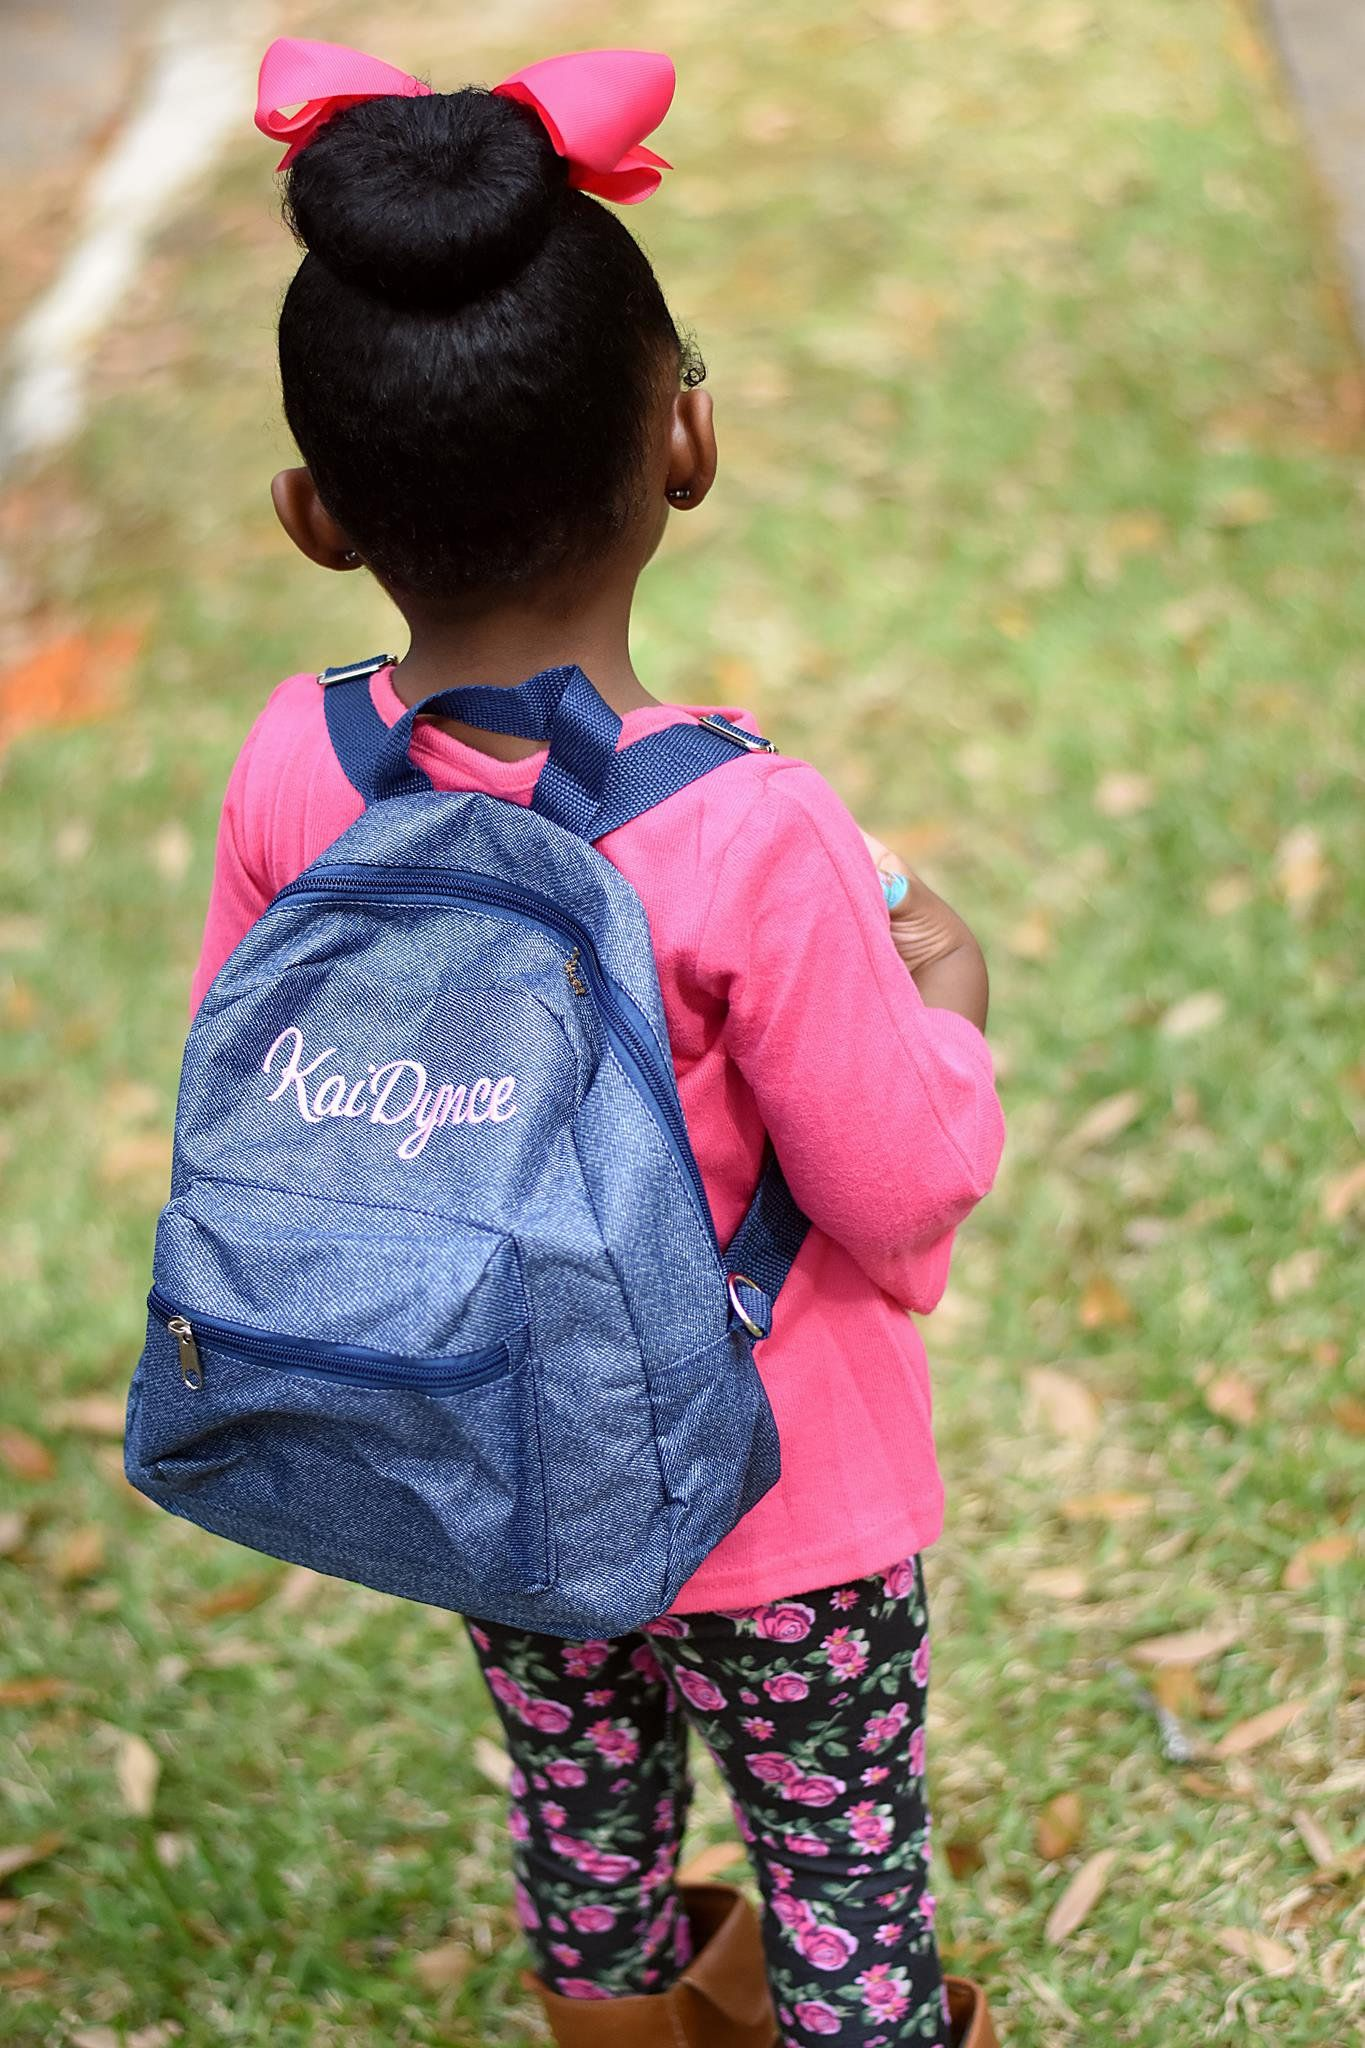 Monogrammed Toddler Backpack - Denim Blue Jean Print - Personalized with Embroidered  Name or Initials - Mini Boy or Girl Bag by D84Designs on Etsy e9f55947c2460